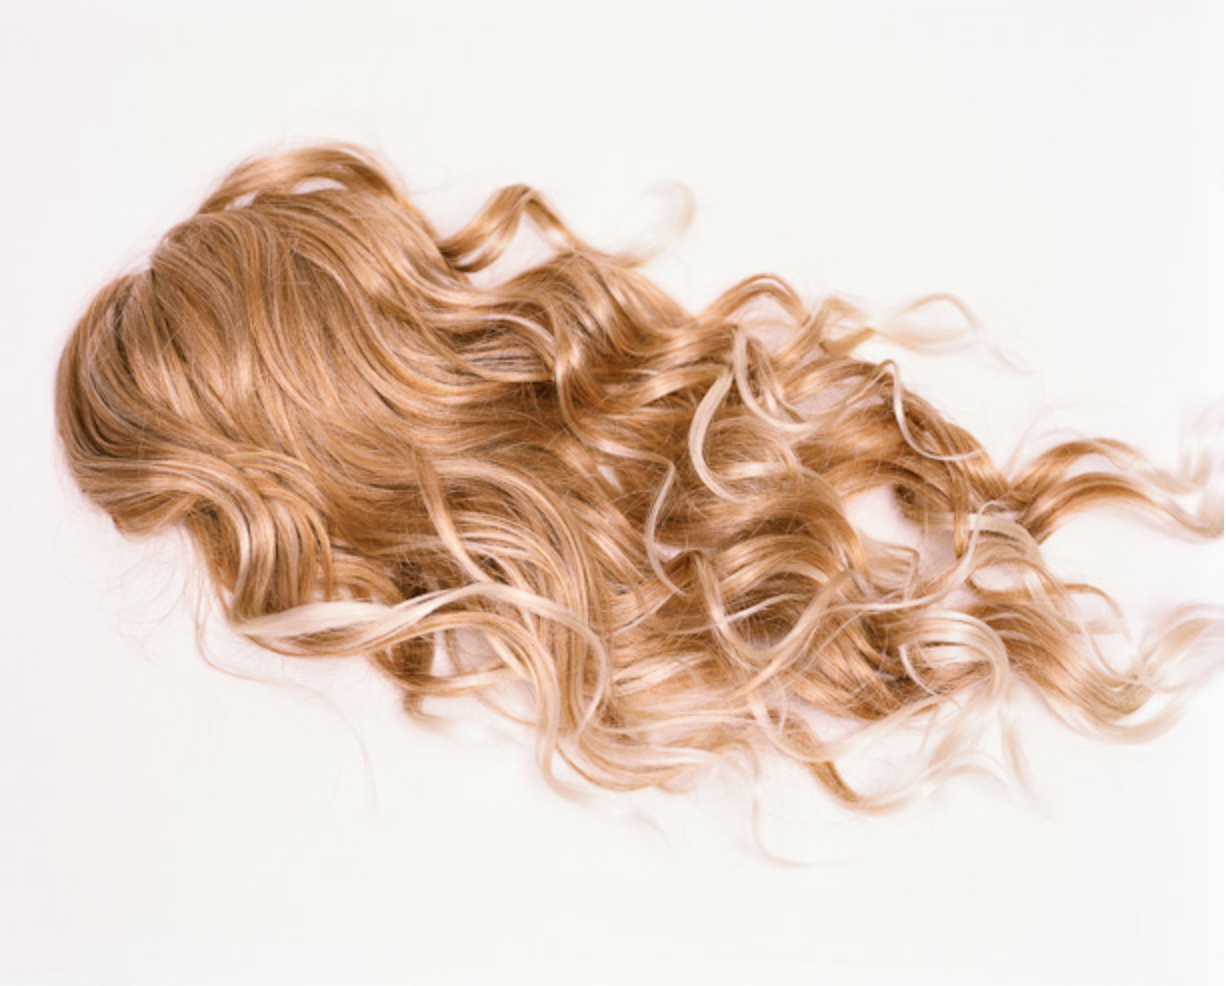 Hair Extensions, London, UK. From Zed Nelsons book Love Me